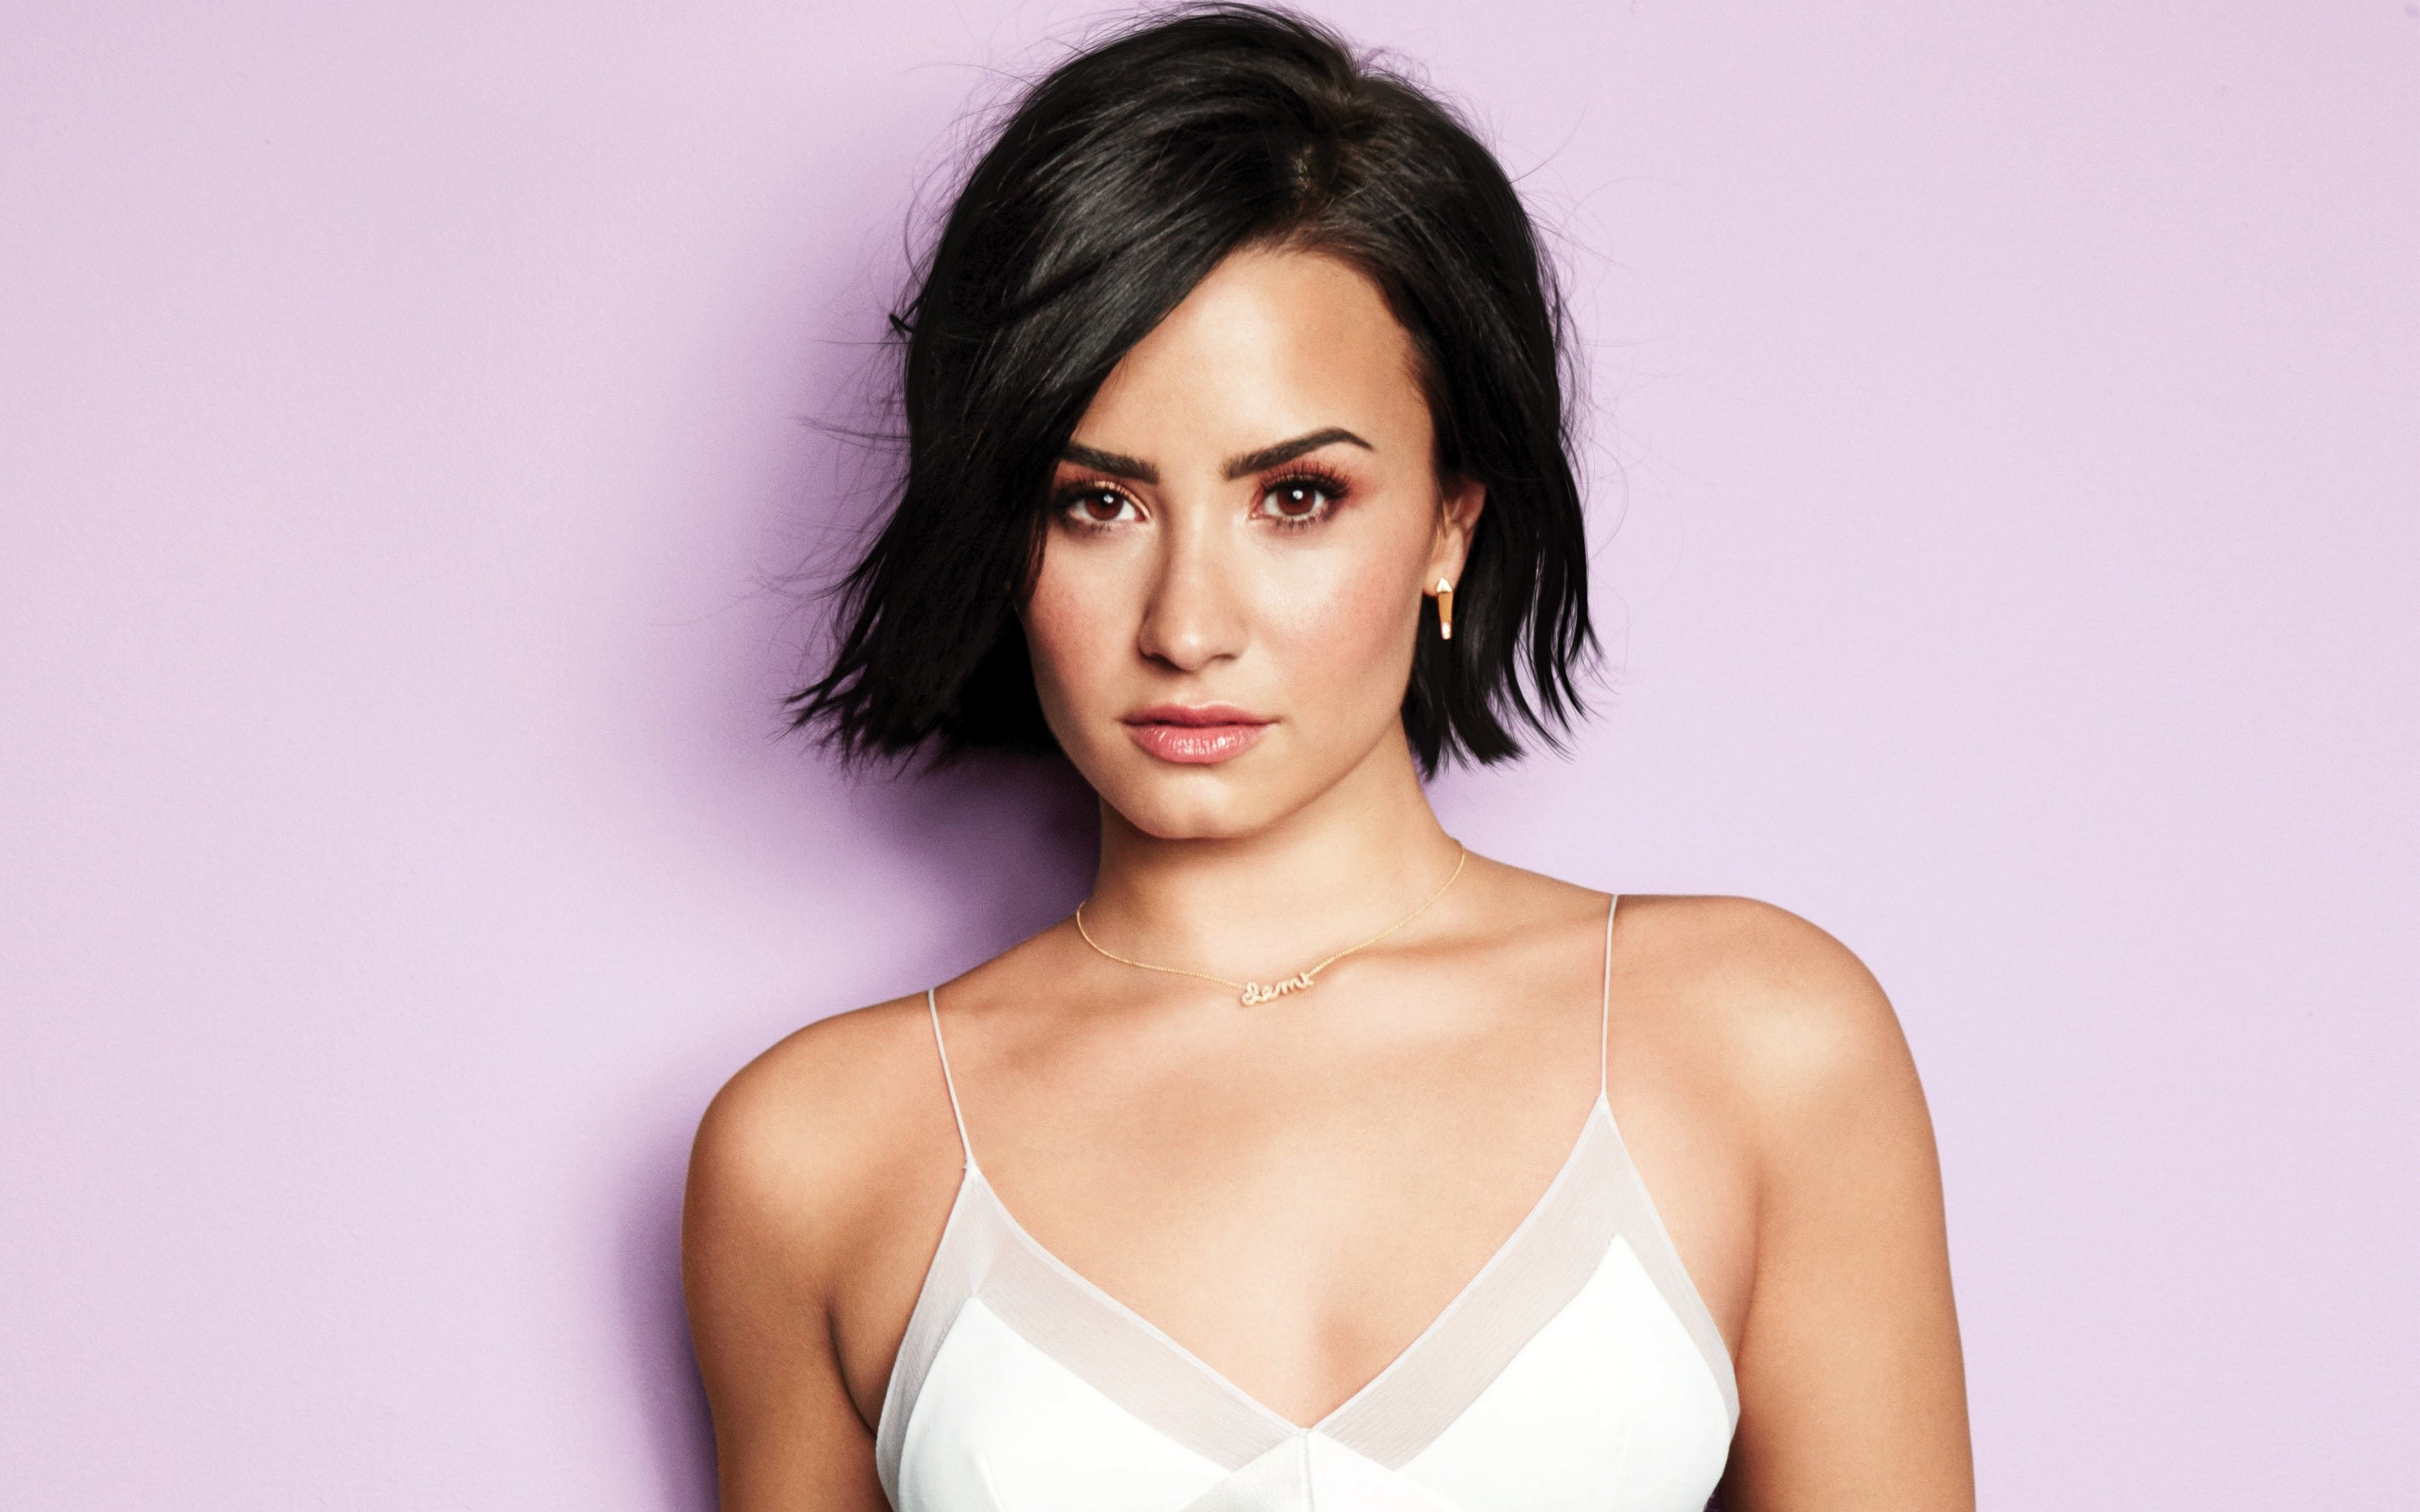 Fondo de pantalla de Demi Lovato is Cool for the summer Imágenes